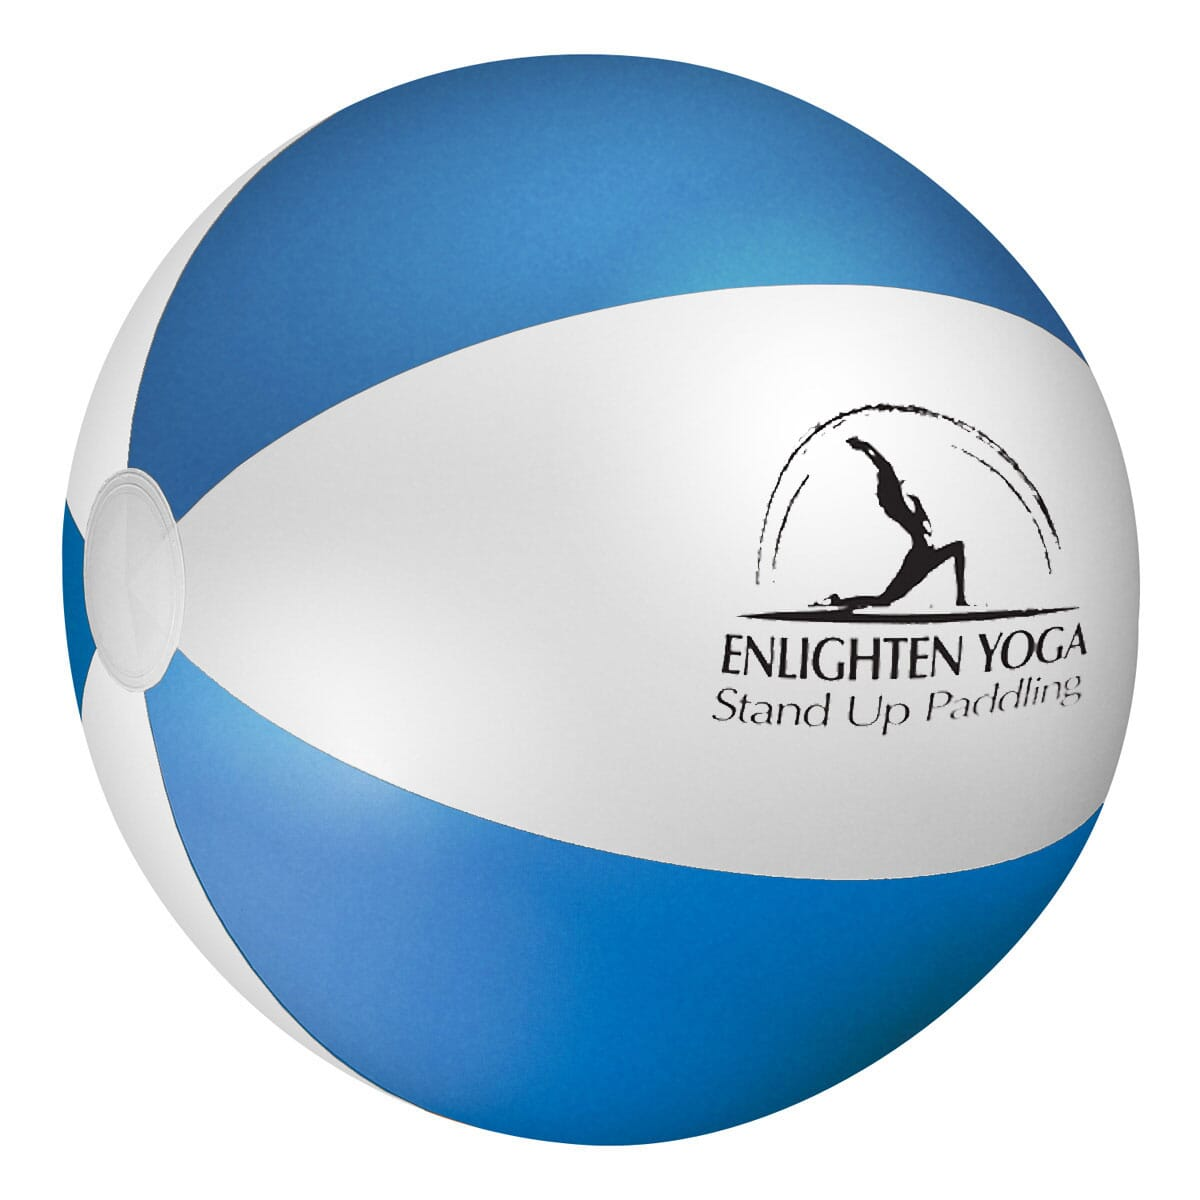 Blue and white striped inflatable beach ball with black logo